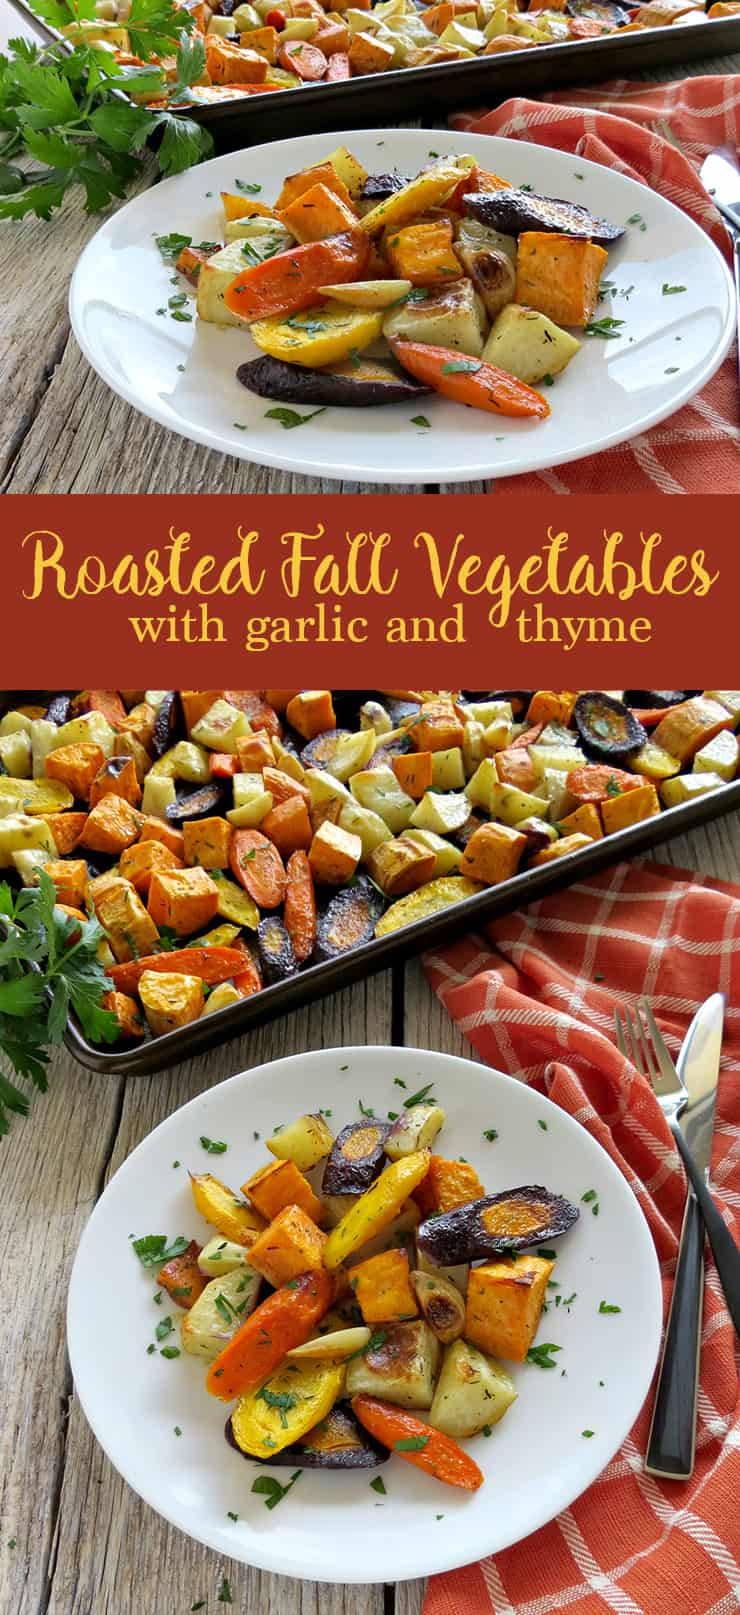 Oven Roasted Fall Vegetables with Garlic and Thyme